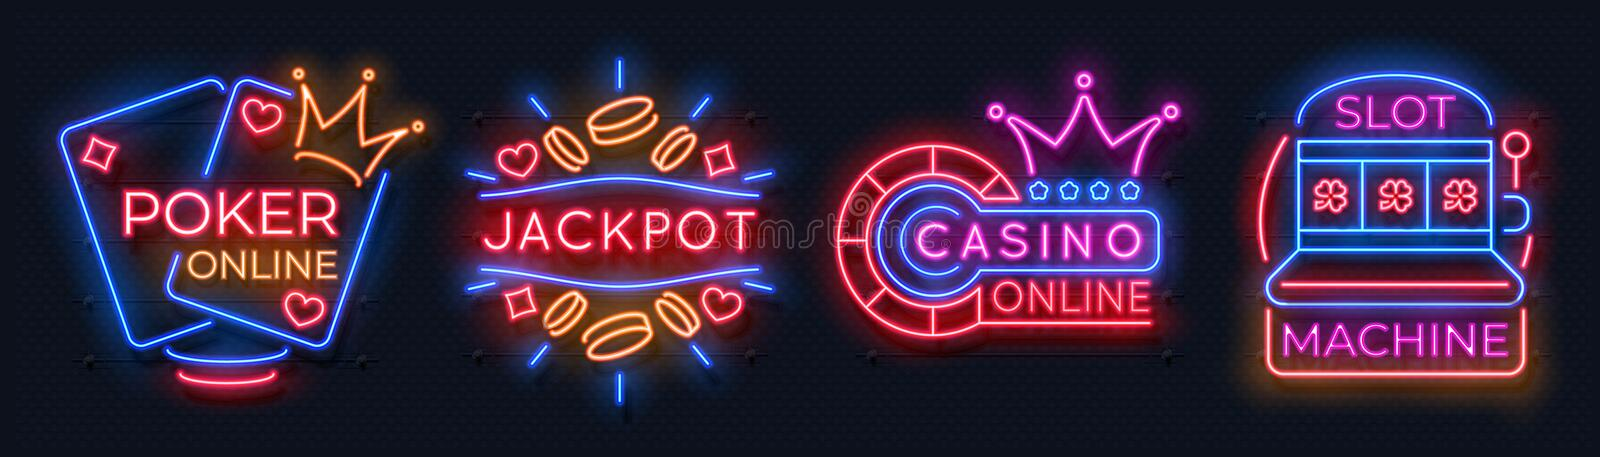 Neon casino banners. Slot machine playing cards lucky roulette gambling signs, online poker game bet. Vector neon casino stock illustration